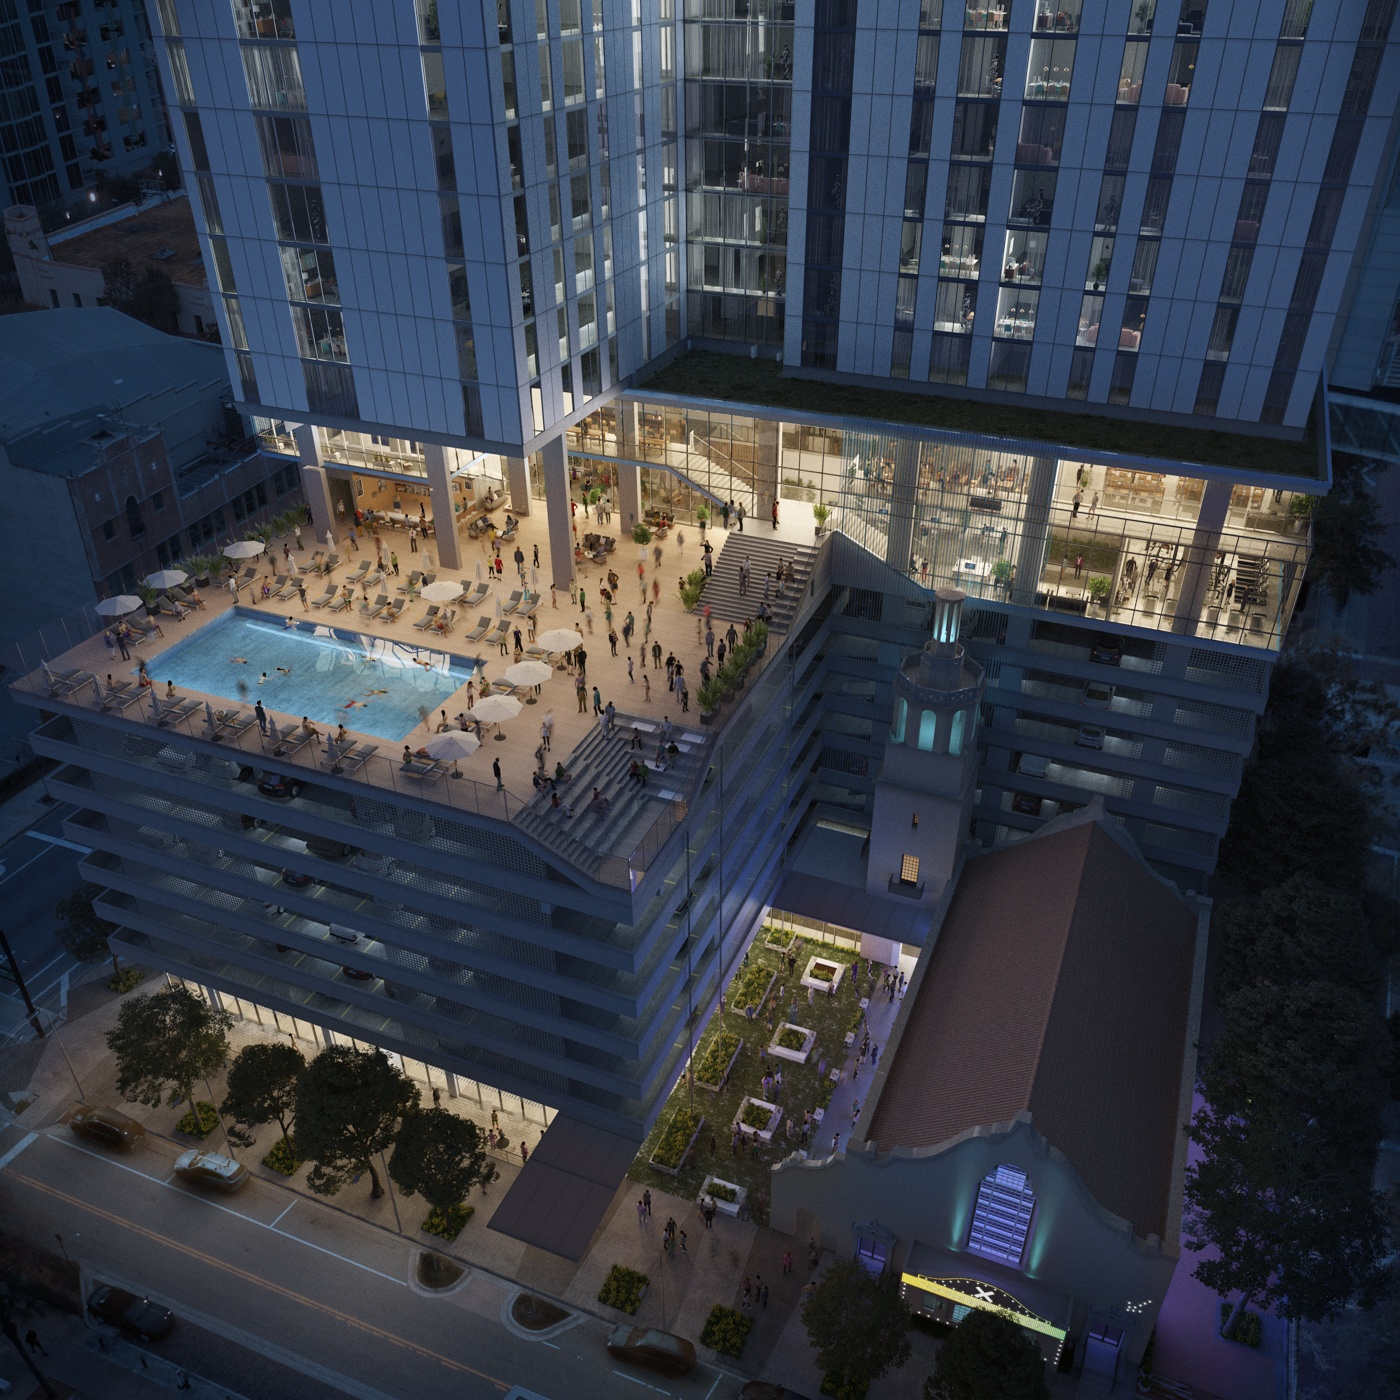 Aerial view of the X Tampa amenity deck, with residents lounging poolside